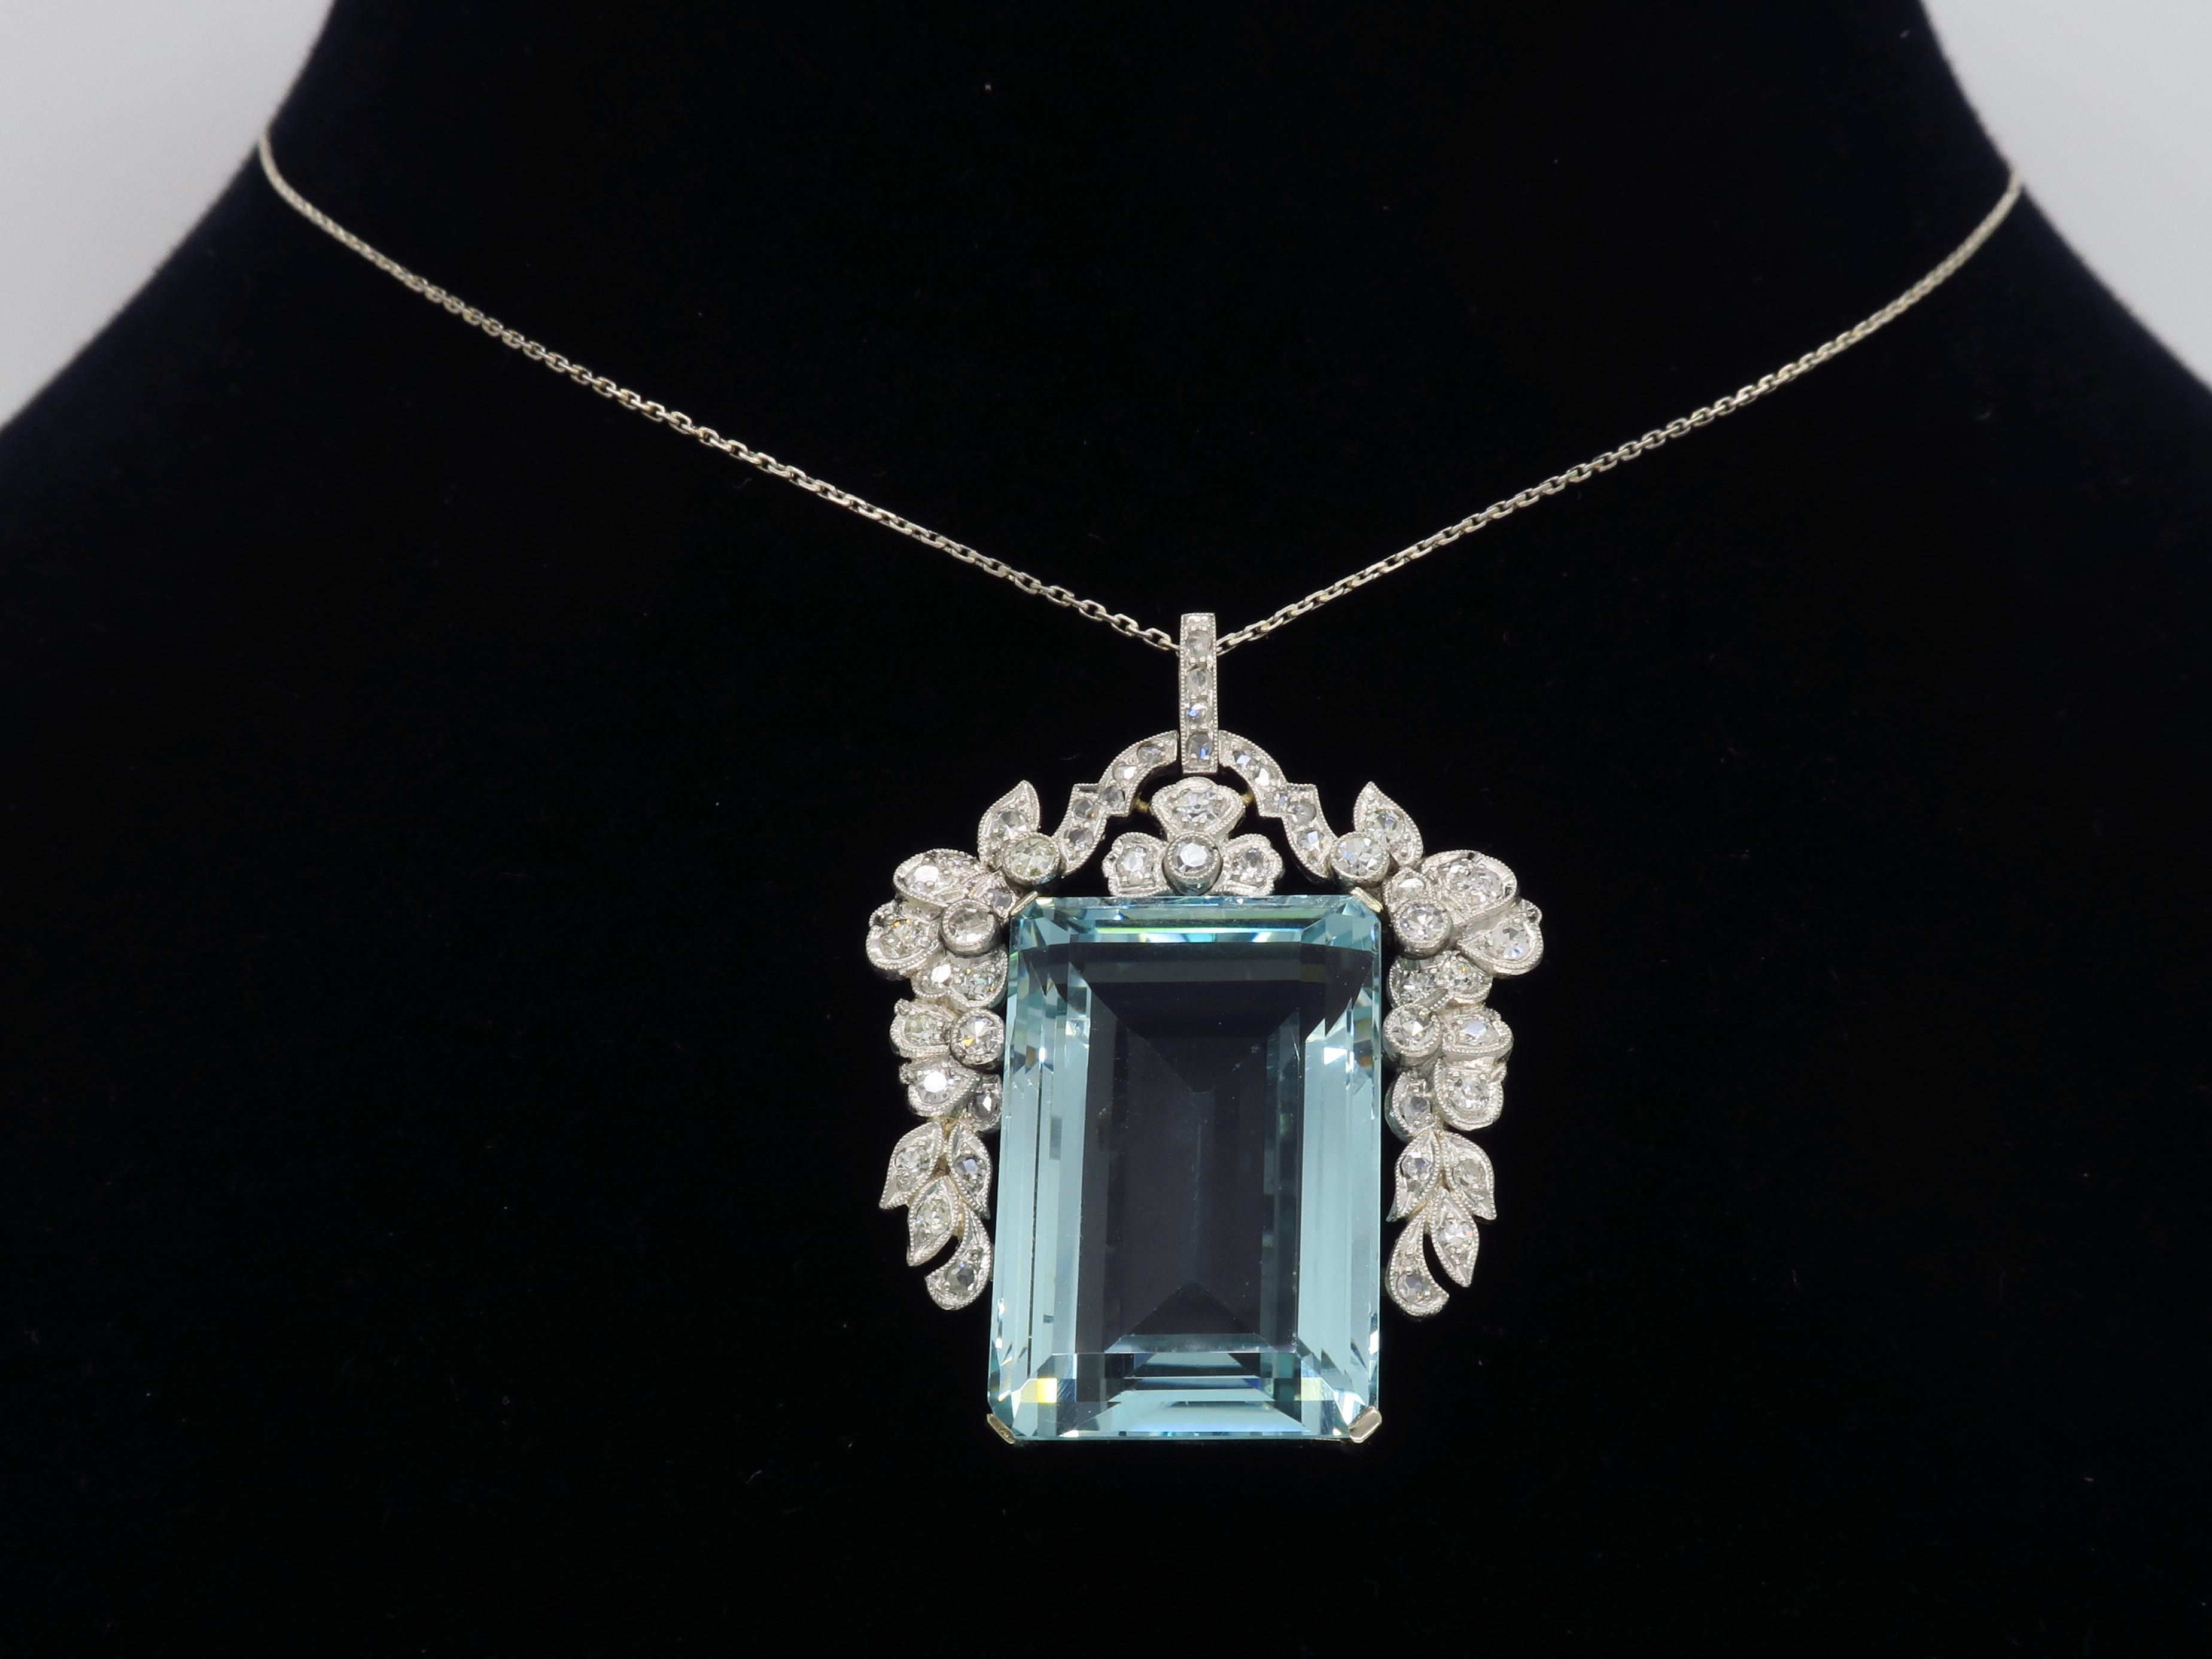 Certified Natural Aquamarine And Diamond Pendant Necklace In Platinum For Most Popular Reversible Diamond, Sapphire And Aquamarine Pendant Necklaces (View 10 of 25)